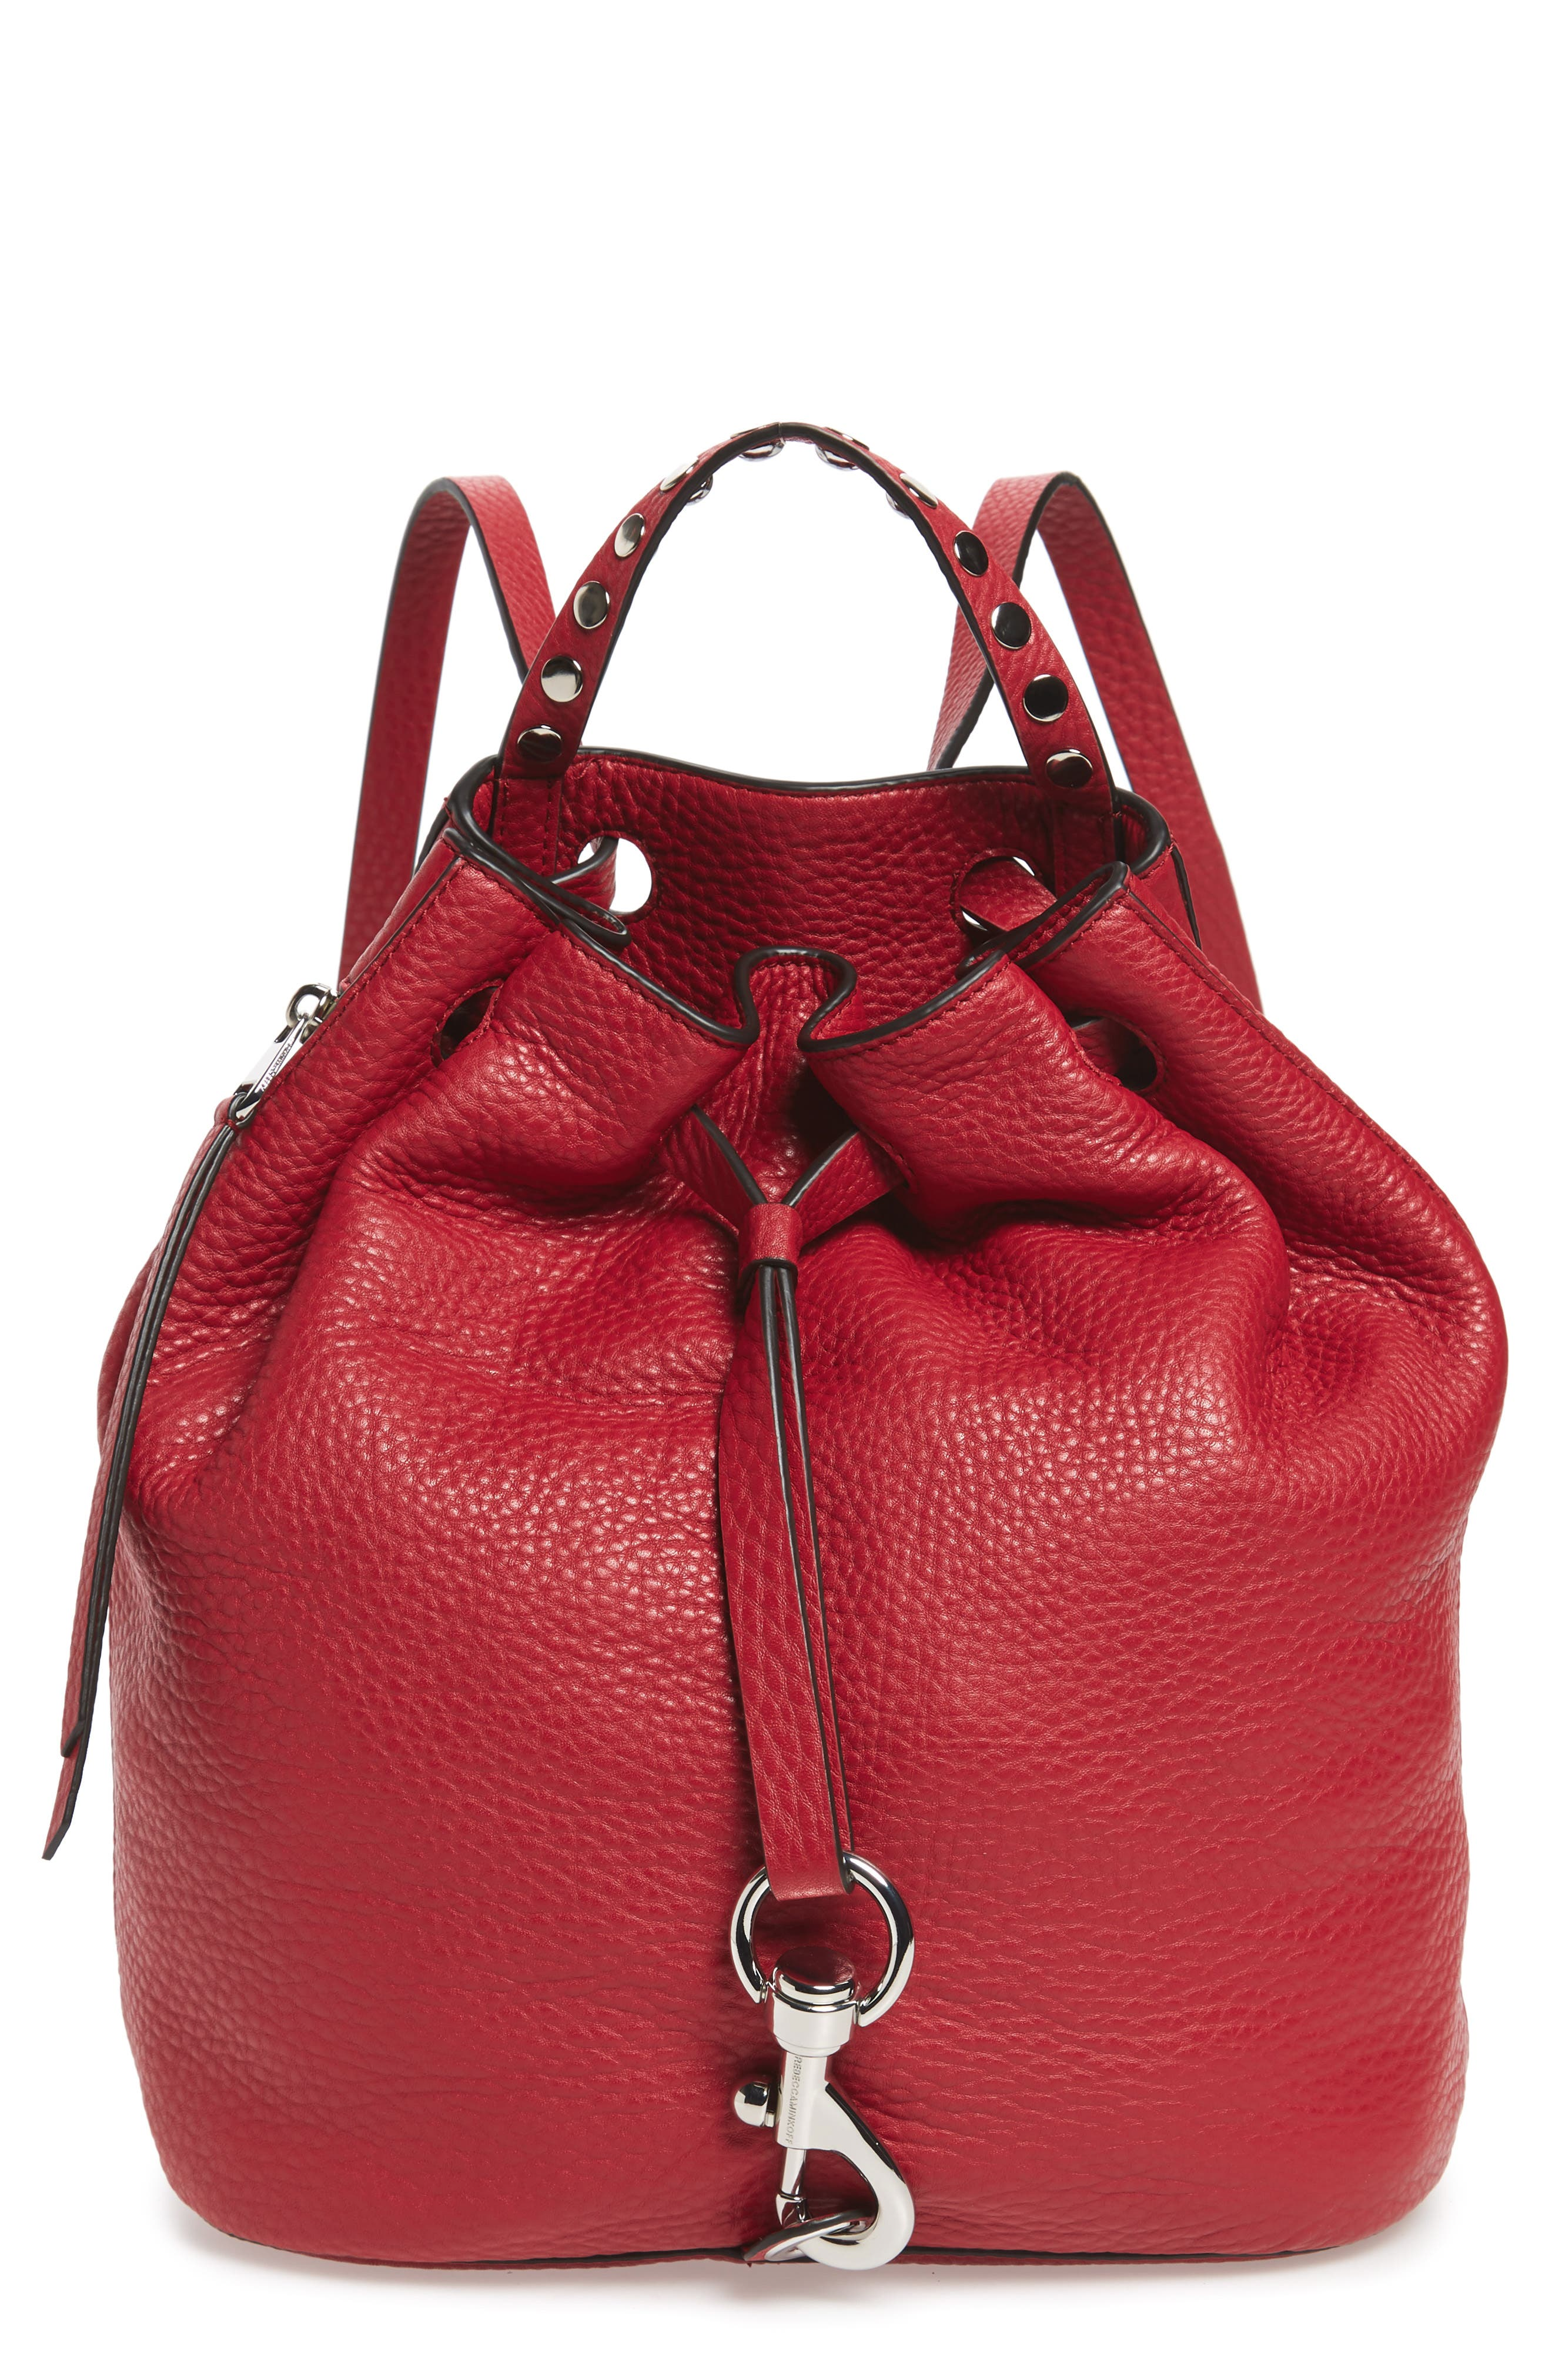 Blythe Leather Backpack,                             Main thumbnail 1, color,                             SCARLET